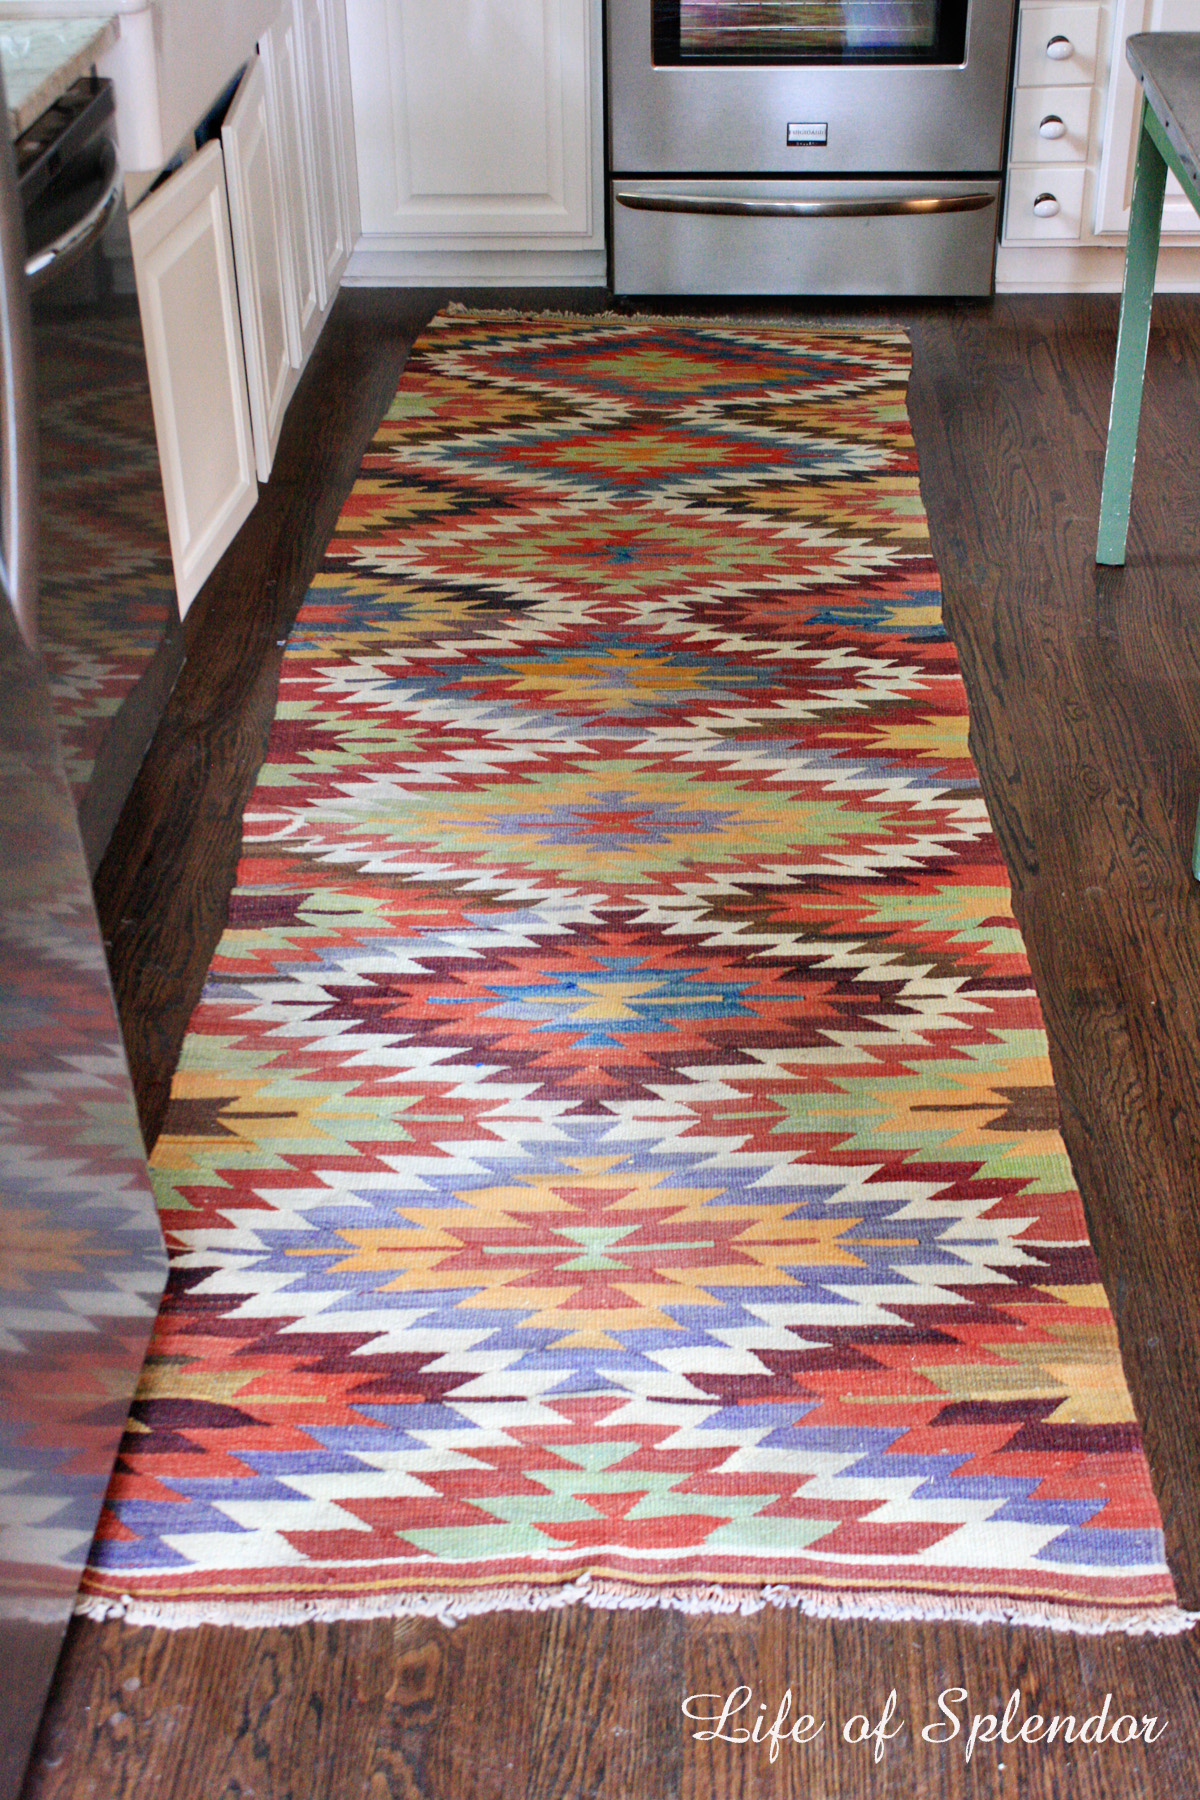 Can I Paint A Jute Rug Designs